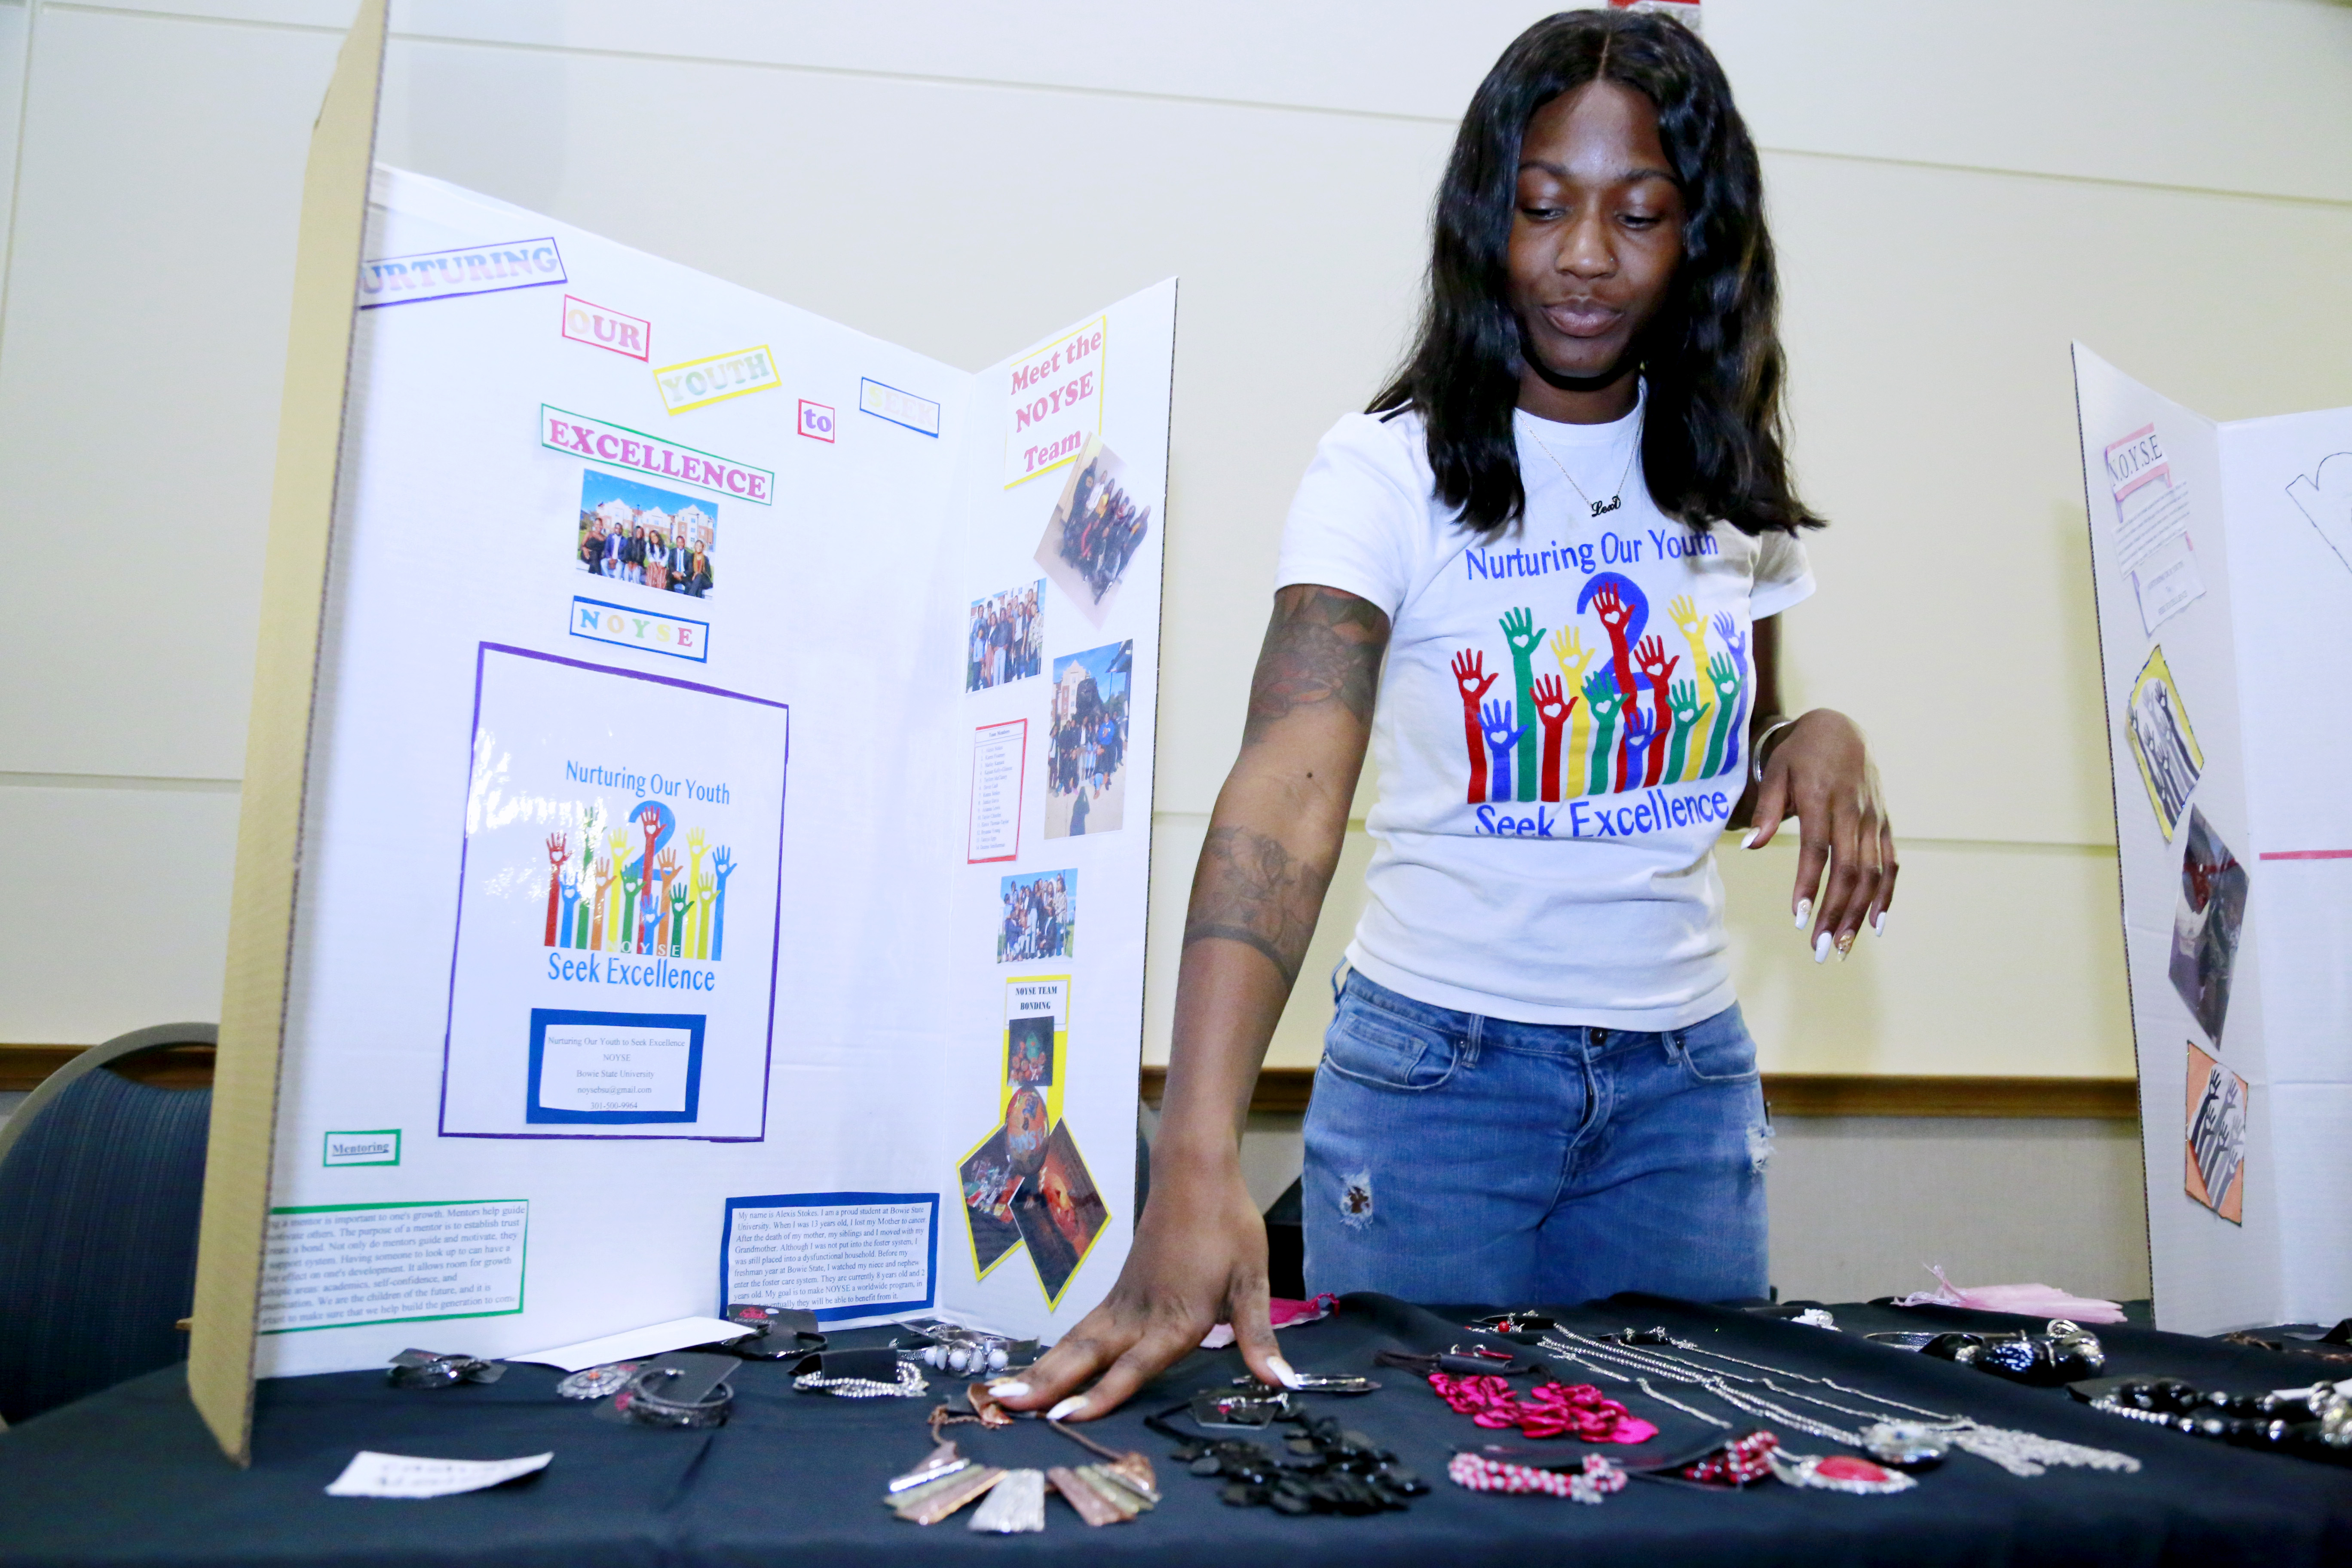 Female student displays jewelry for sale on a table, with a poster board describing her business